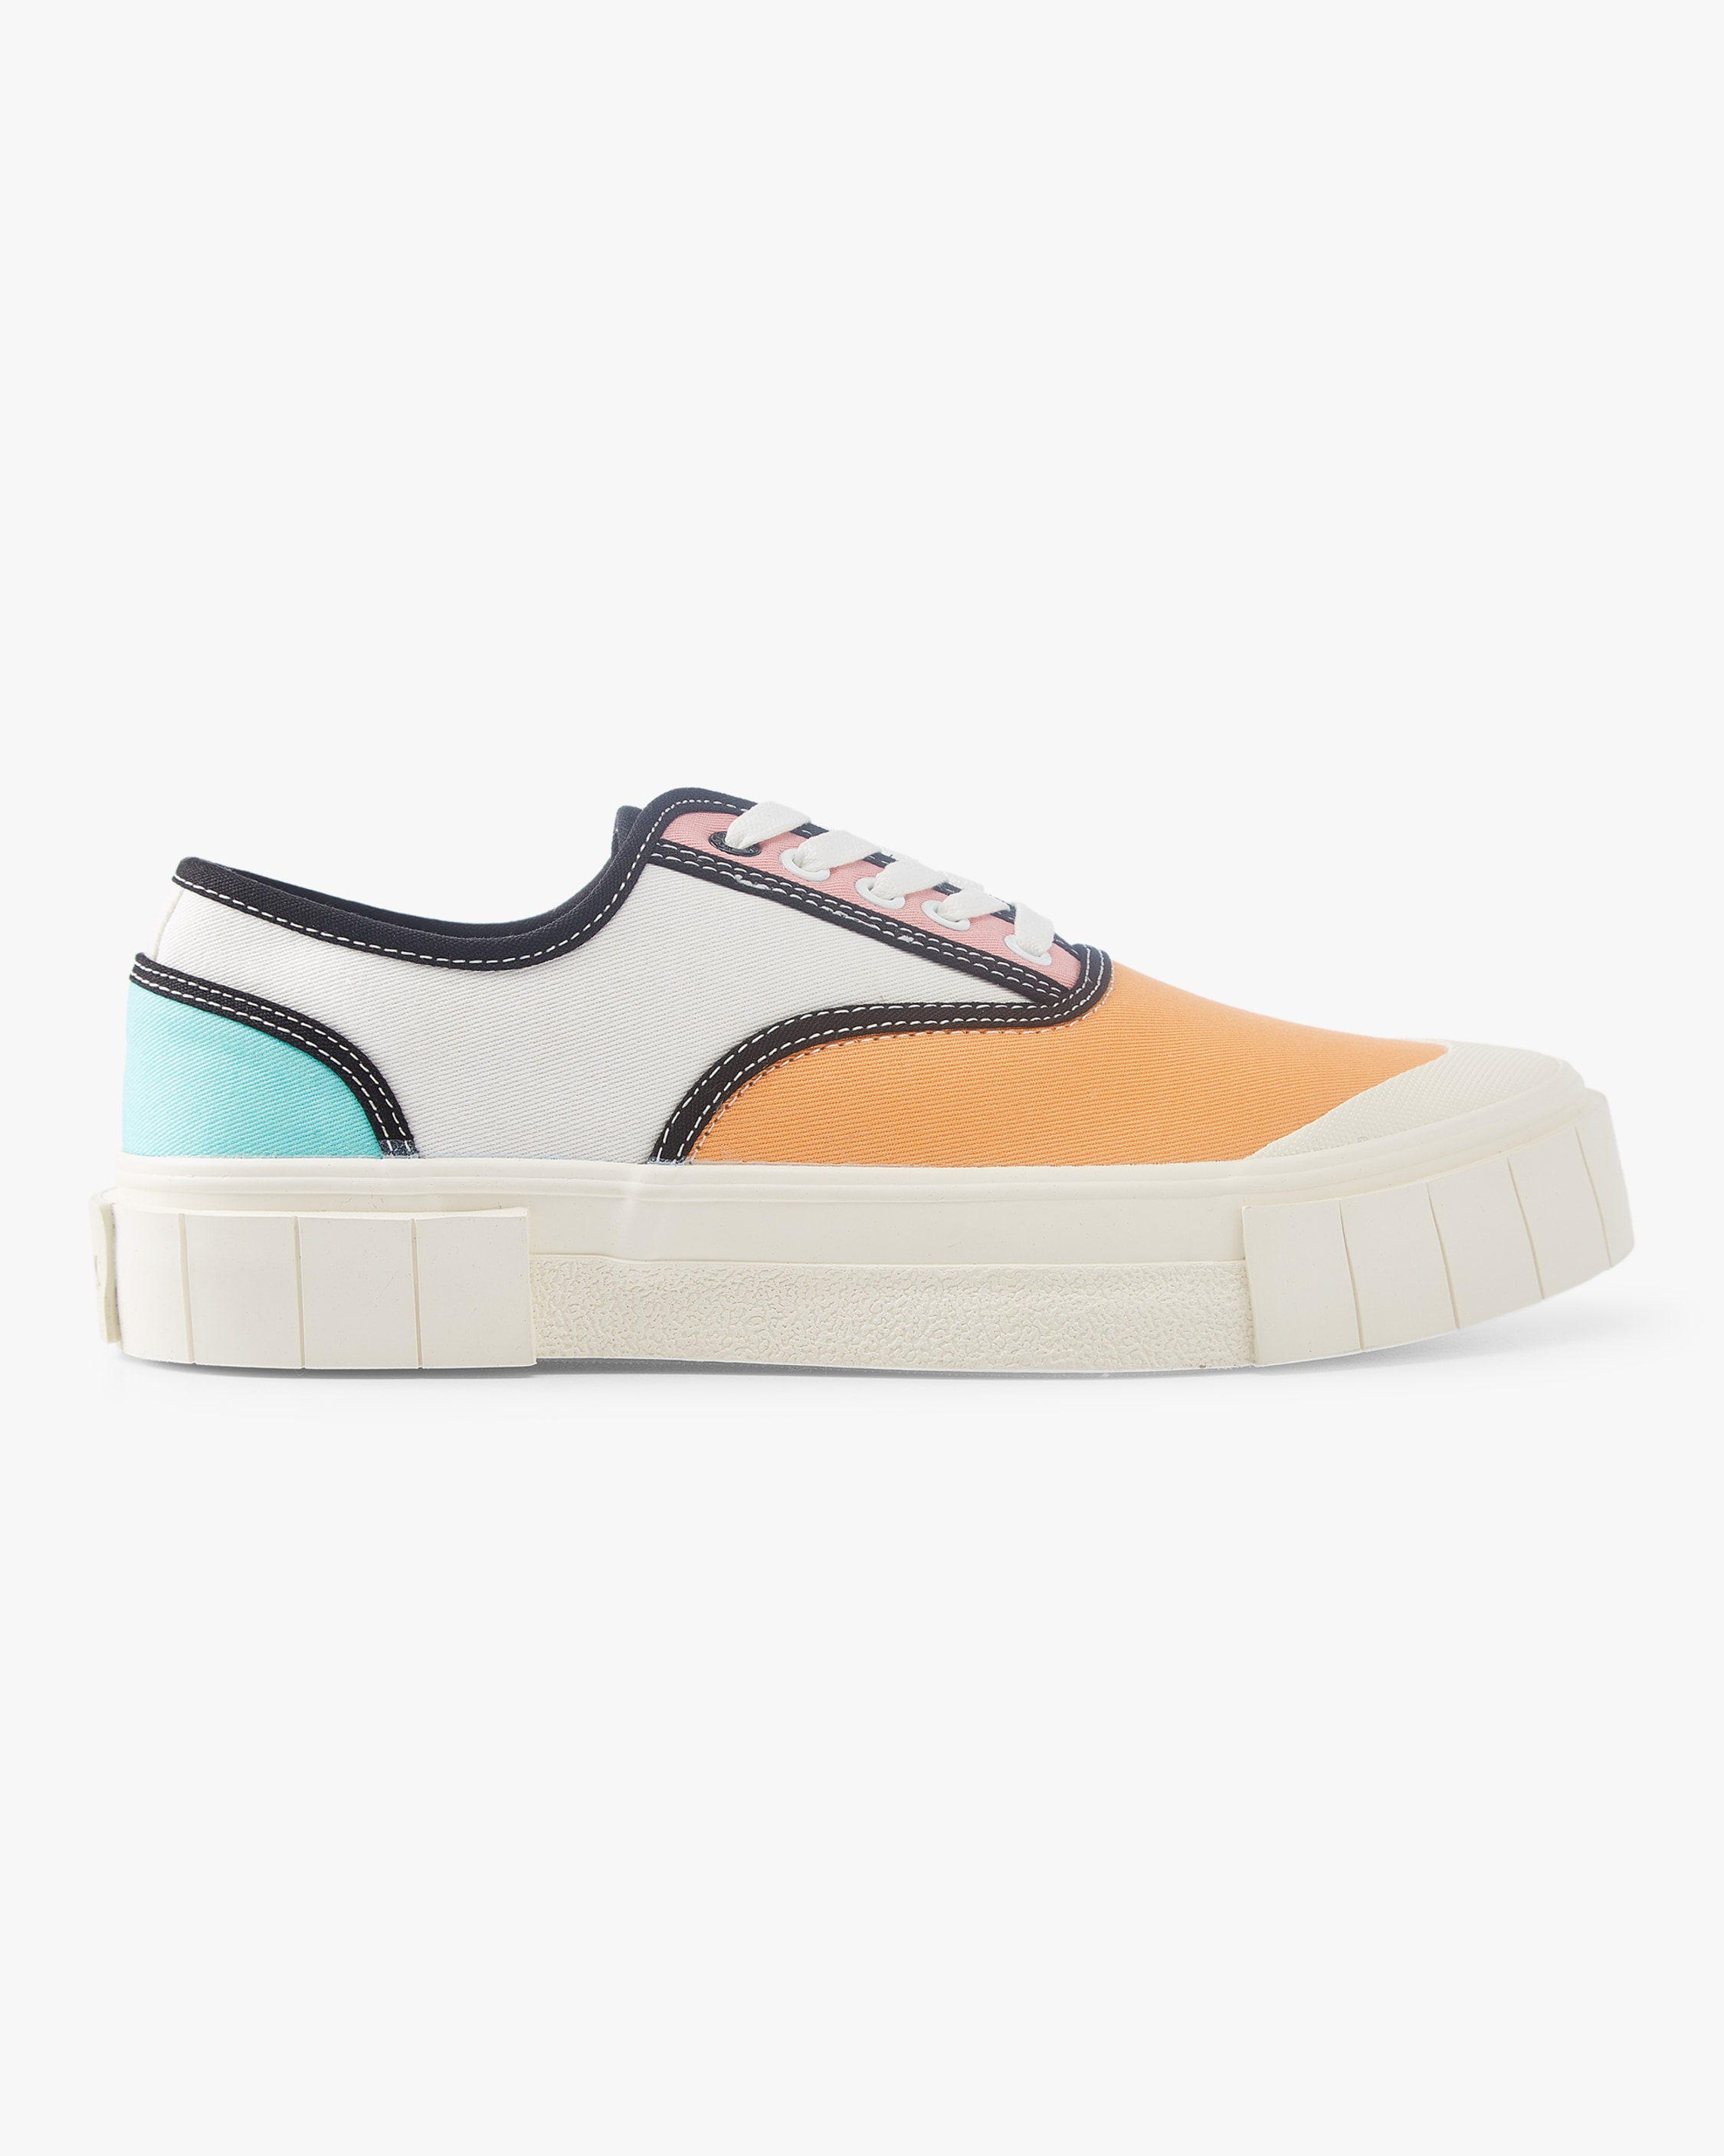 GOOD NEWS Babe 2 Low Sneakers 1